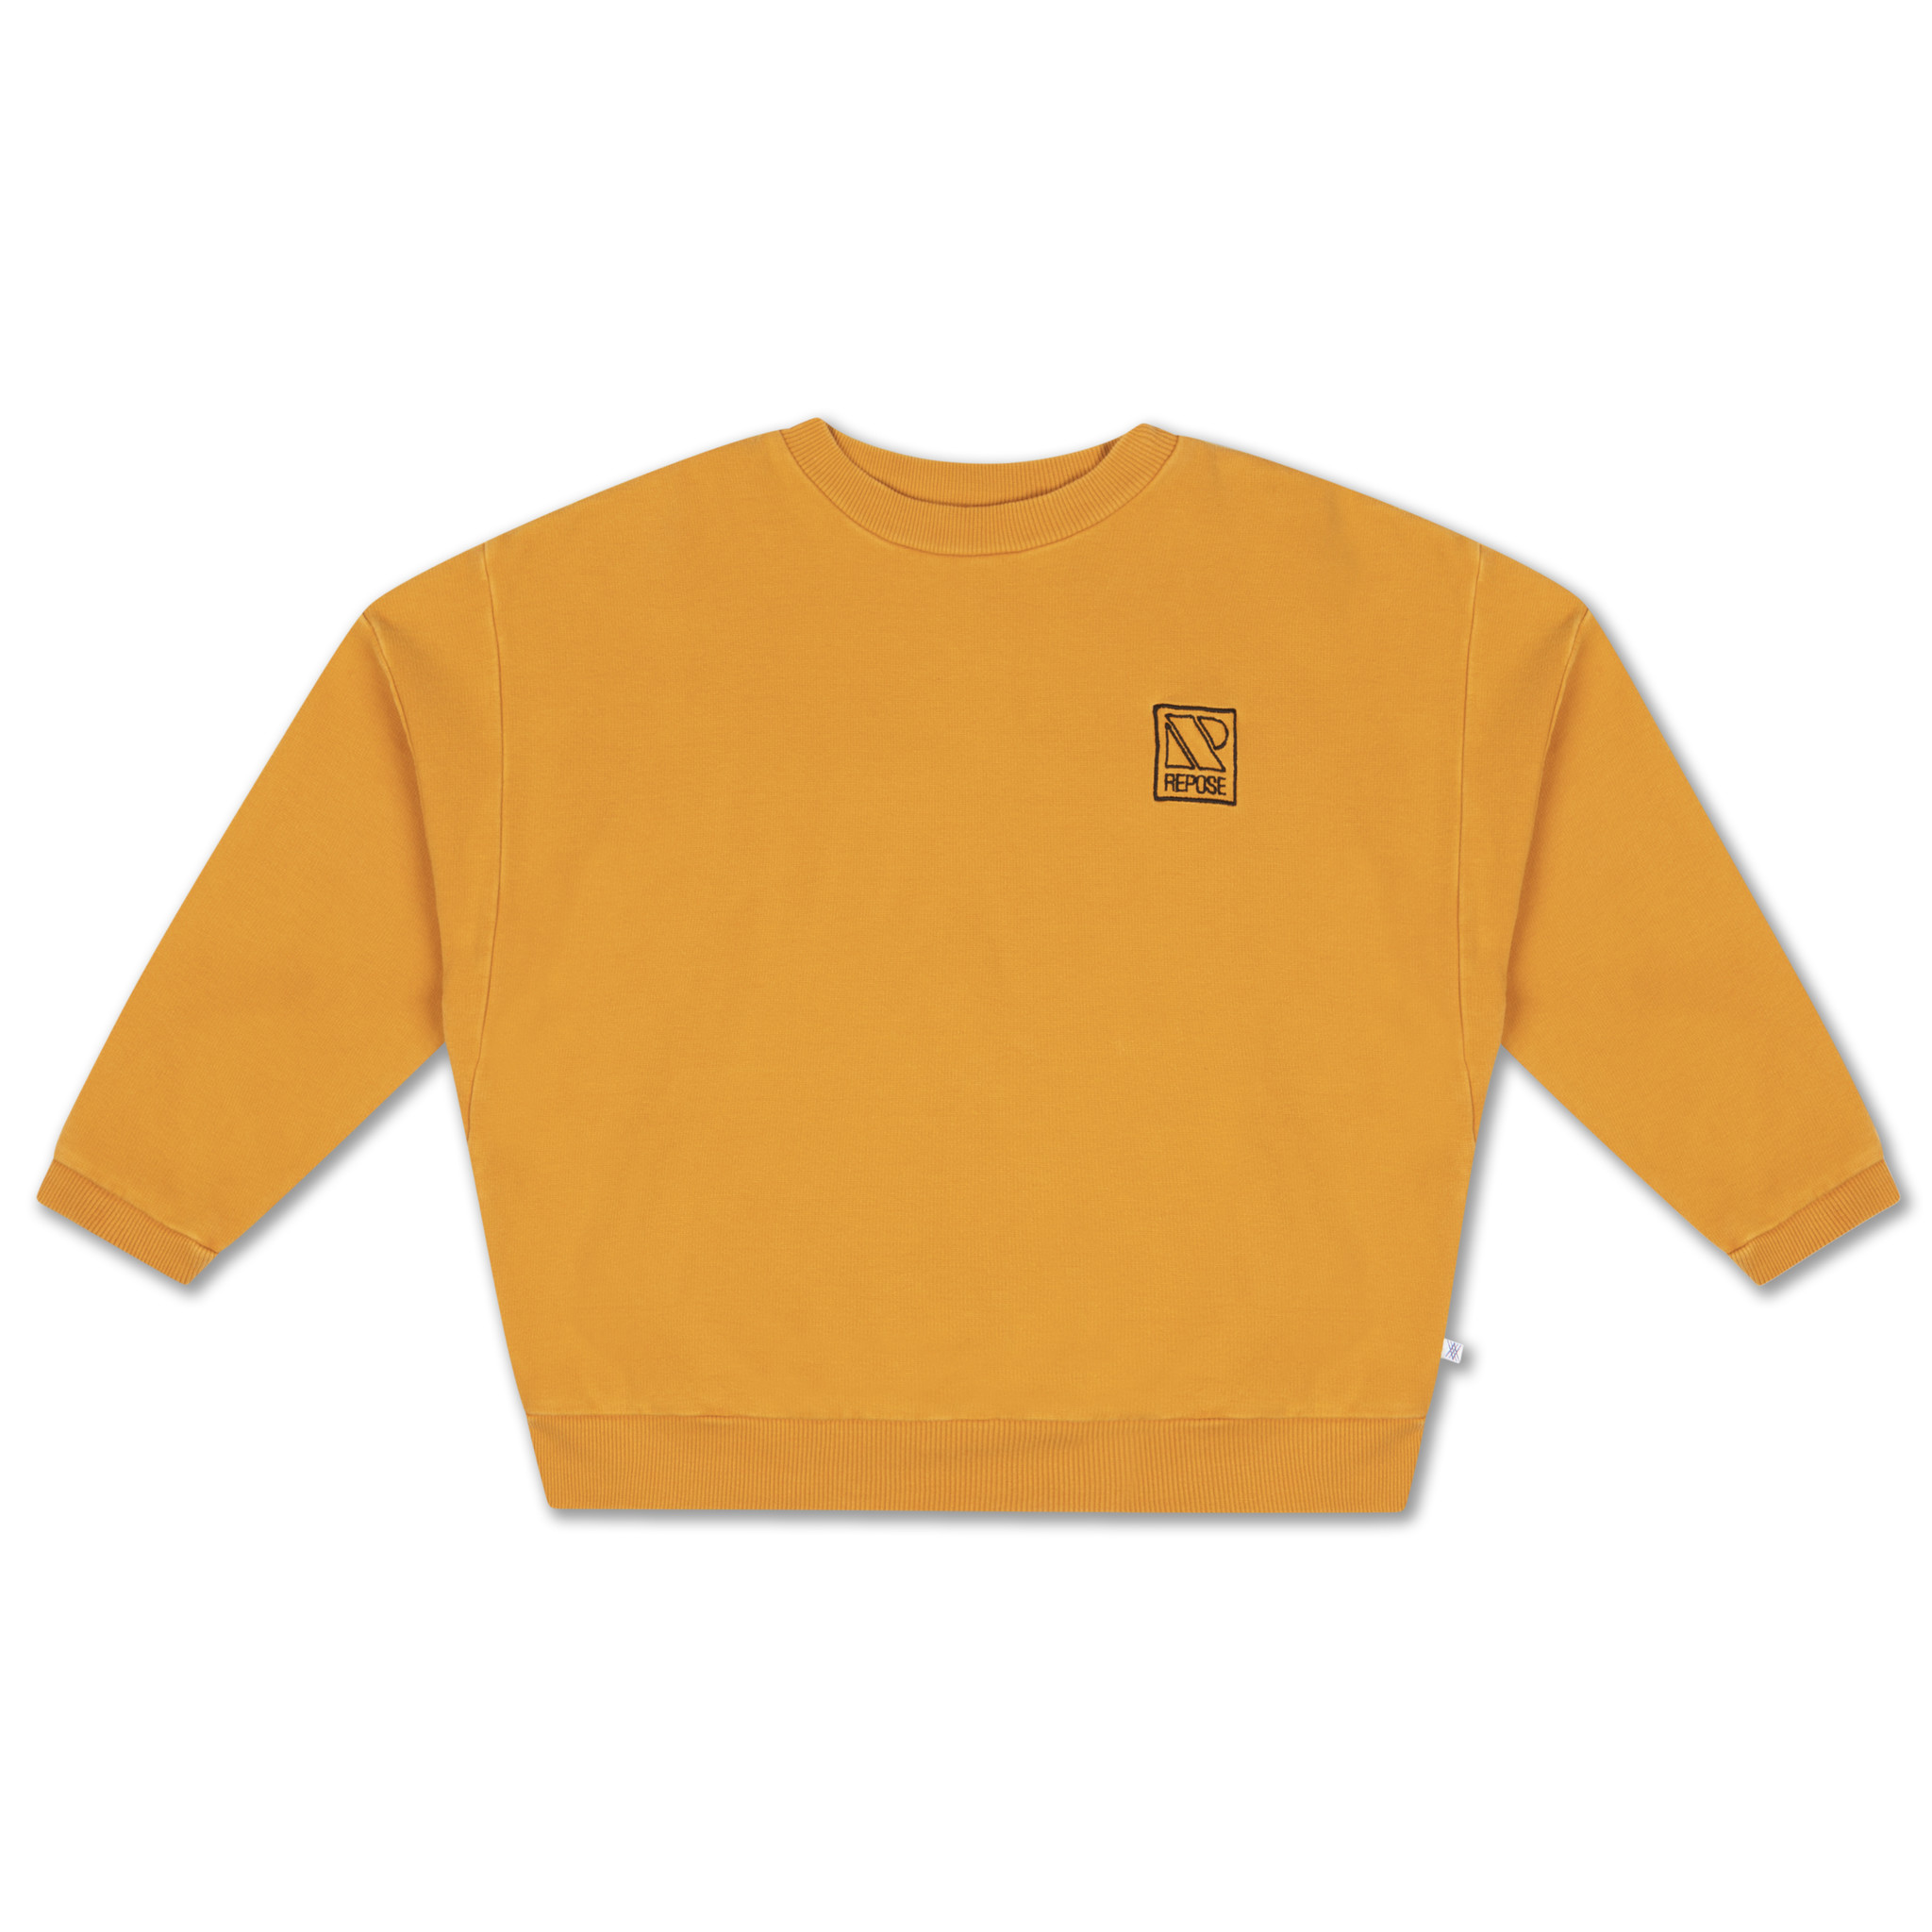 Crewneck sweater - Radiant Yellow-1